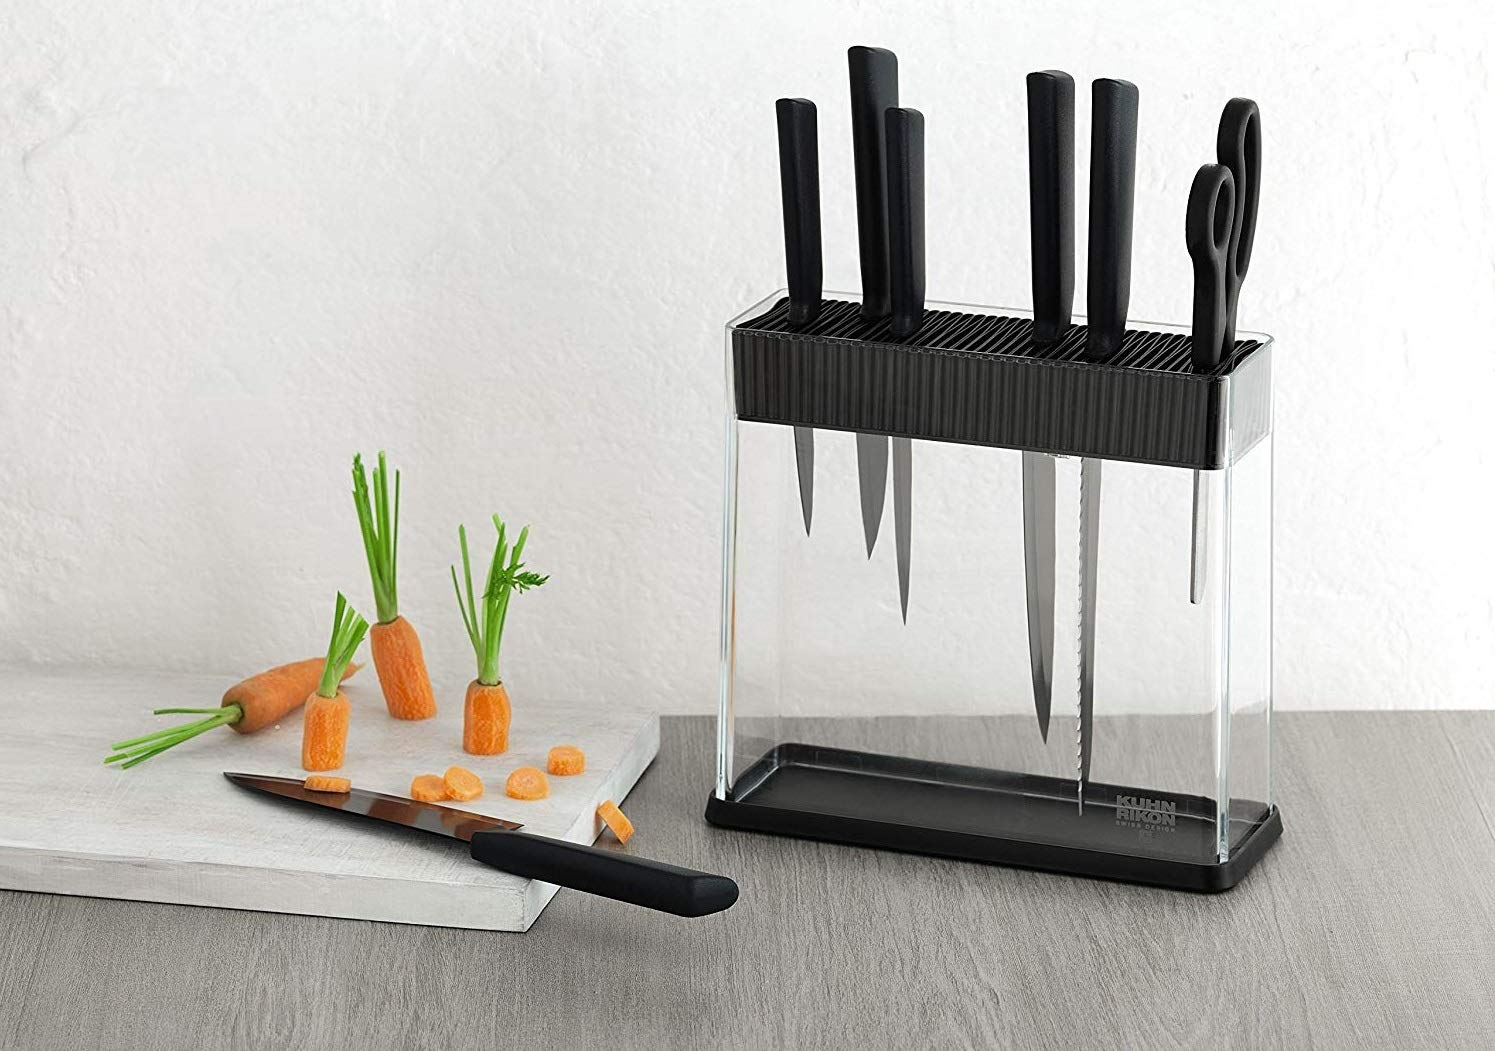 Kuhn Rikon Vision Clear Slotted Easy-to-Clean Knife Stand